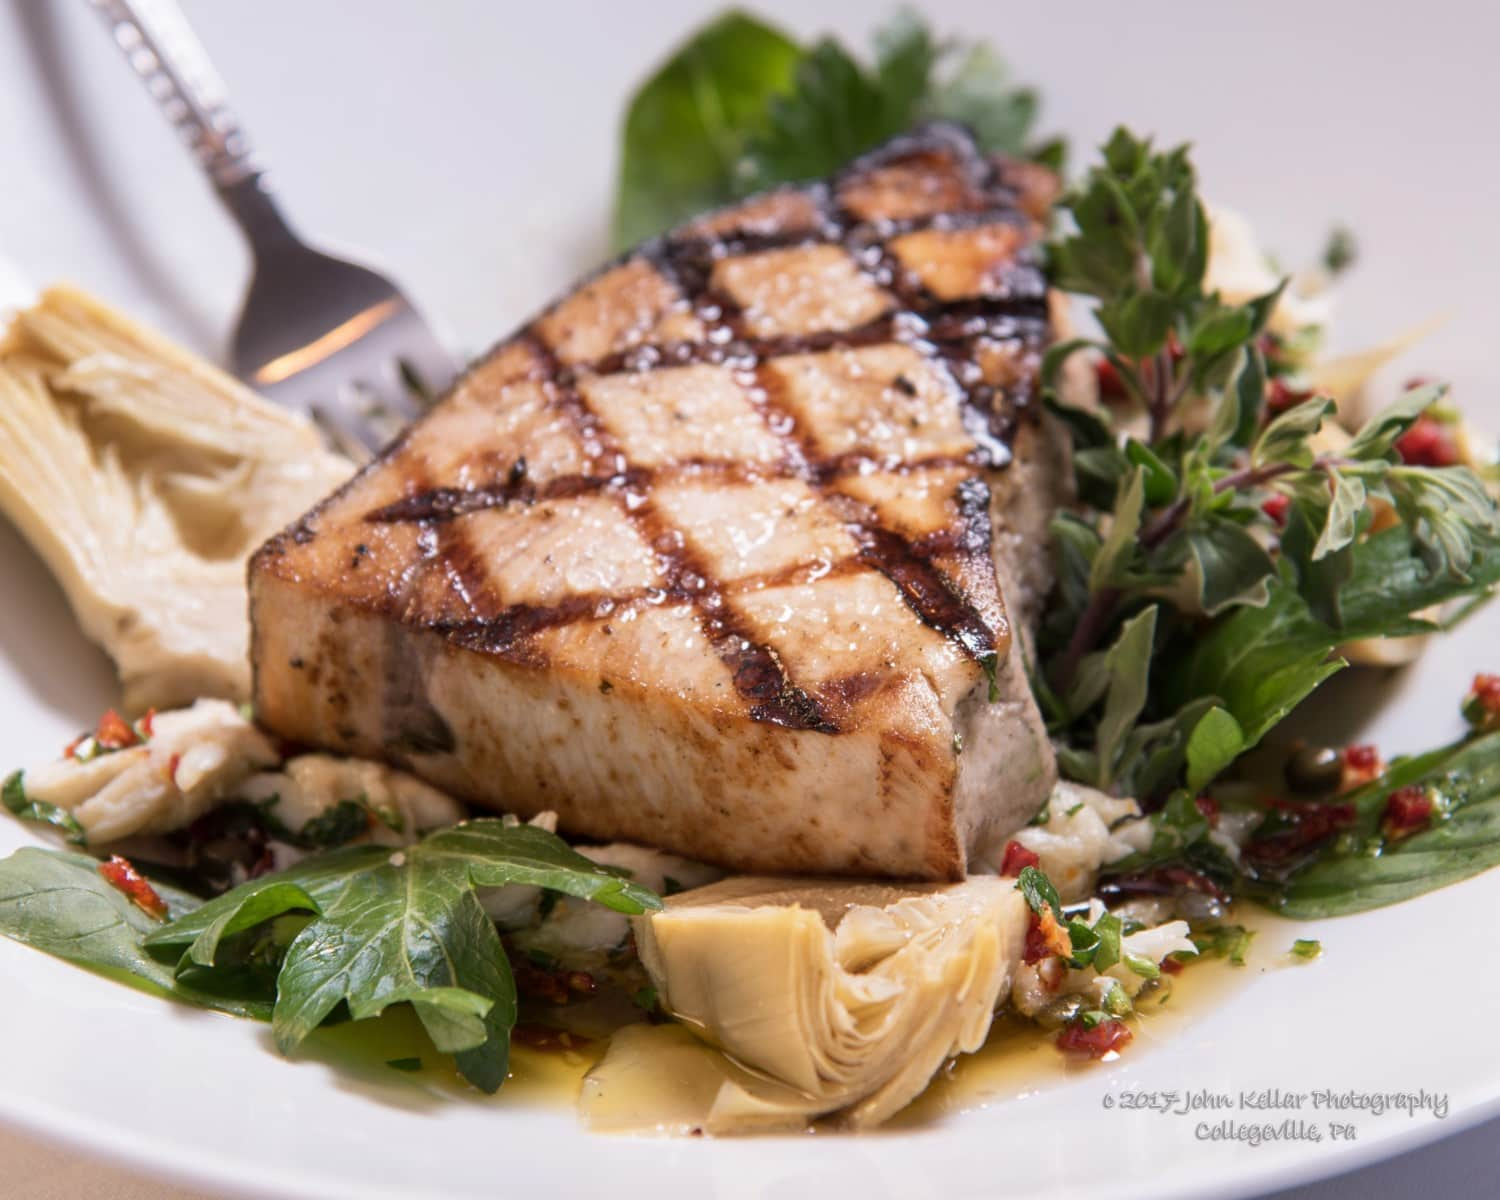 Chicken entree food photography